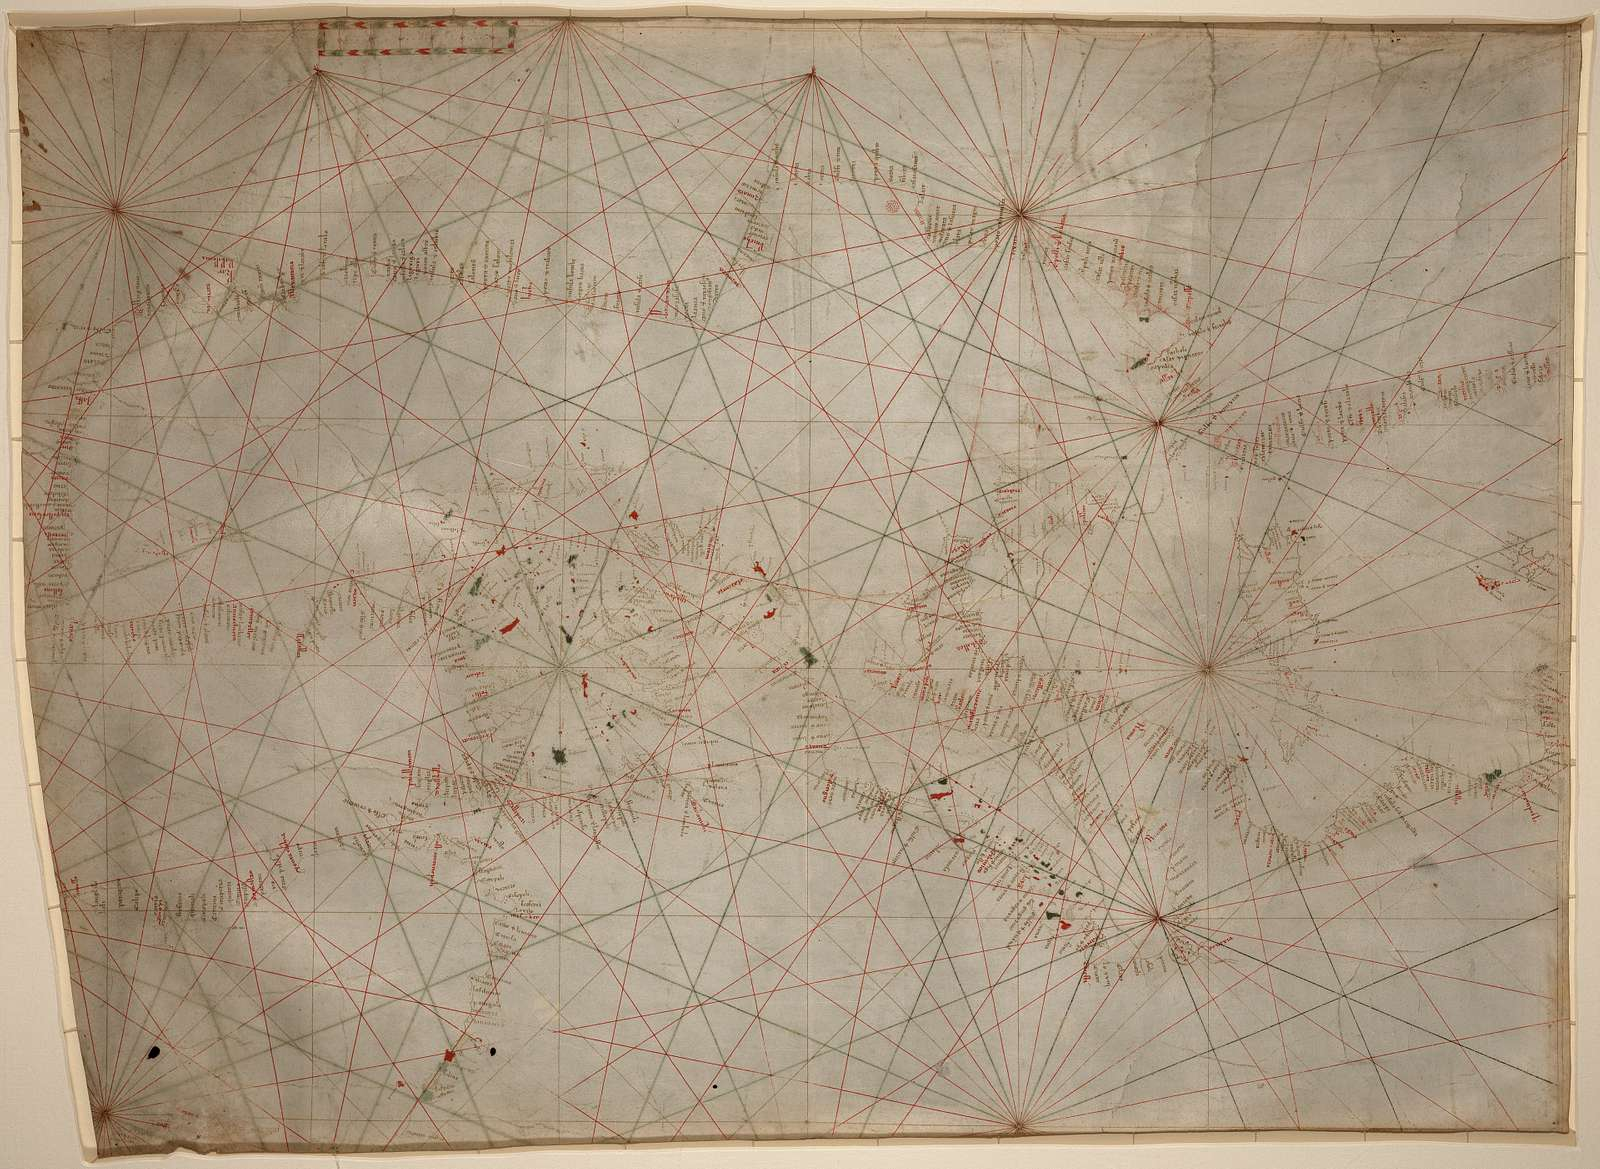 [Portolan chart of the Mediterranean Sea ca. 1320-1350 : manuscript chart of the Mediterranean and Black seas on vellum].